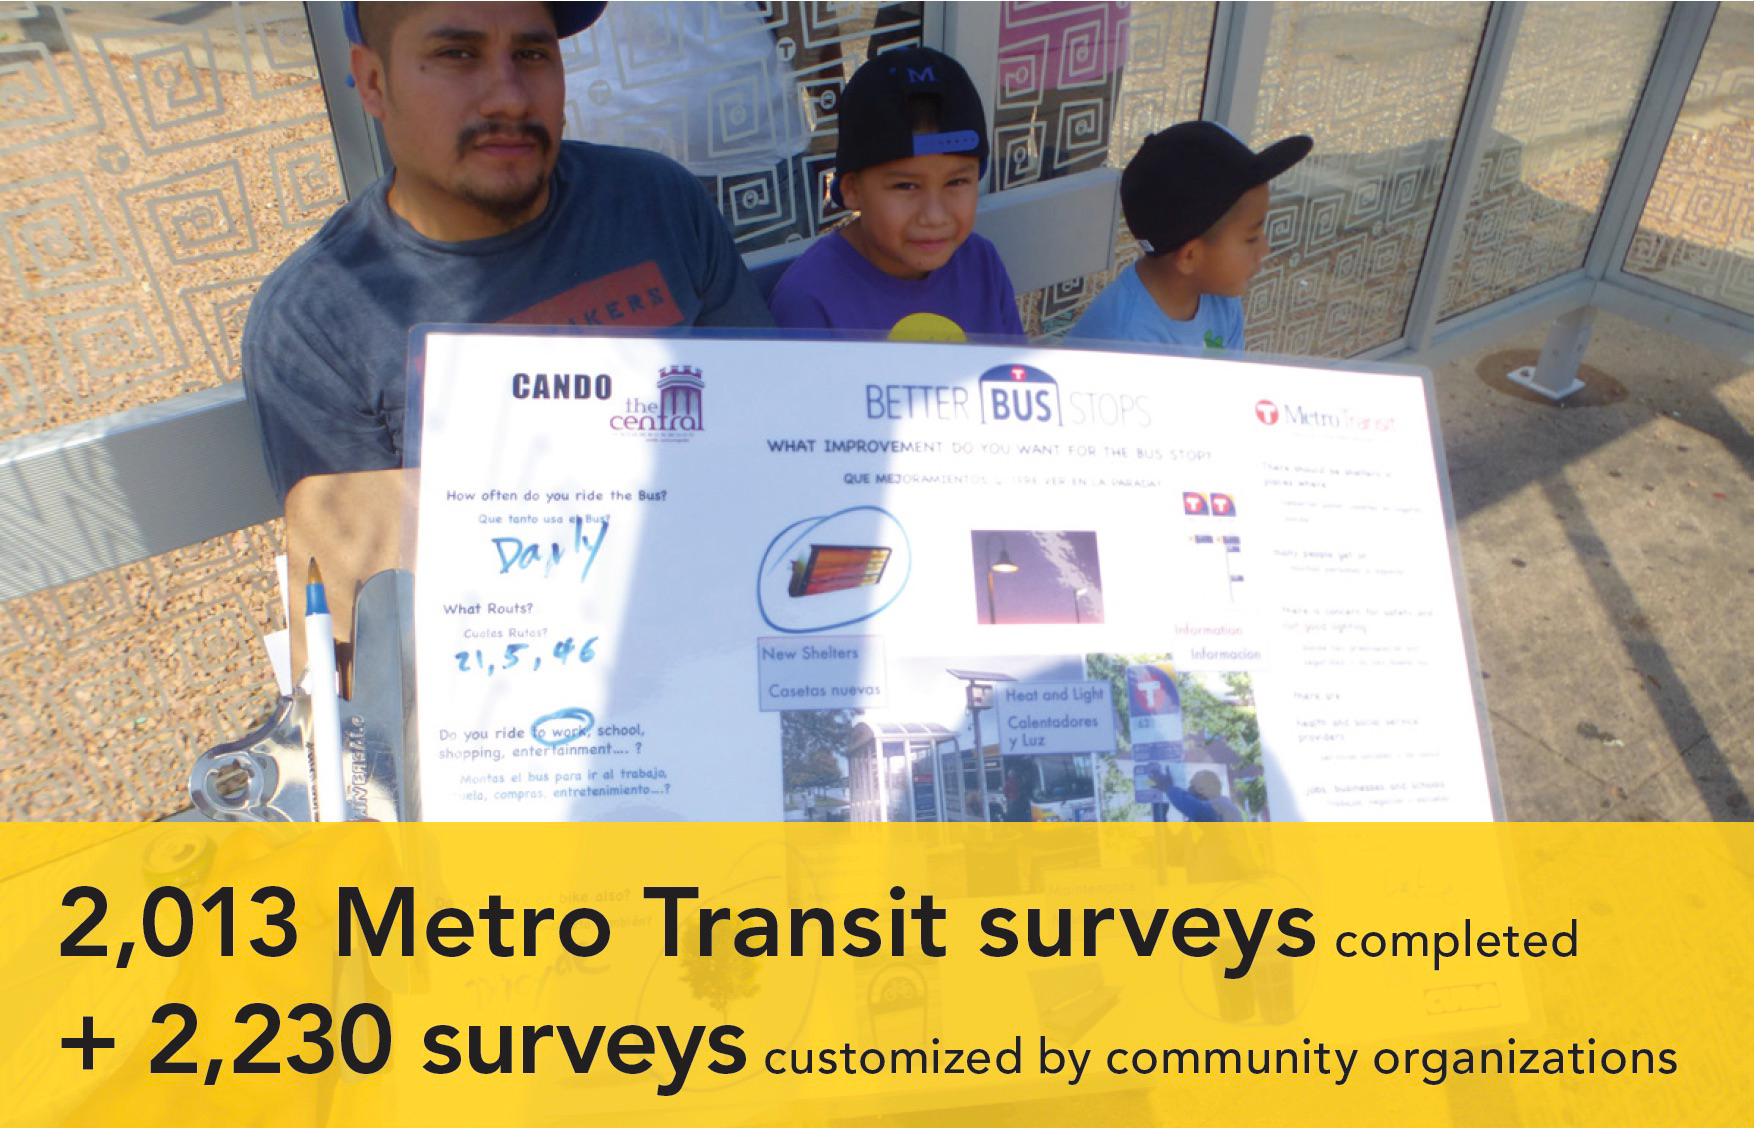 2,013 Metro Transit surveys completed + 2,230 surveys customized by community organizations.